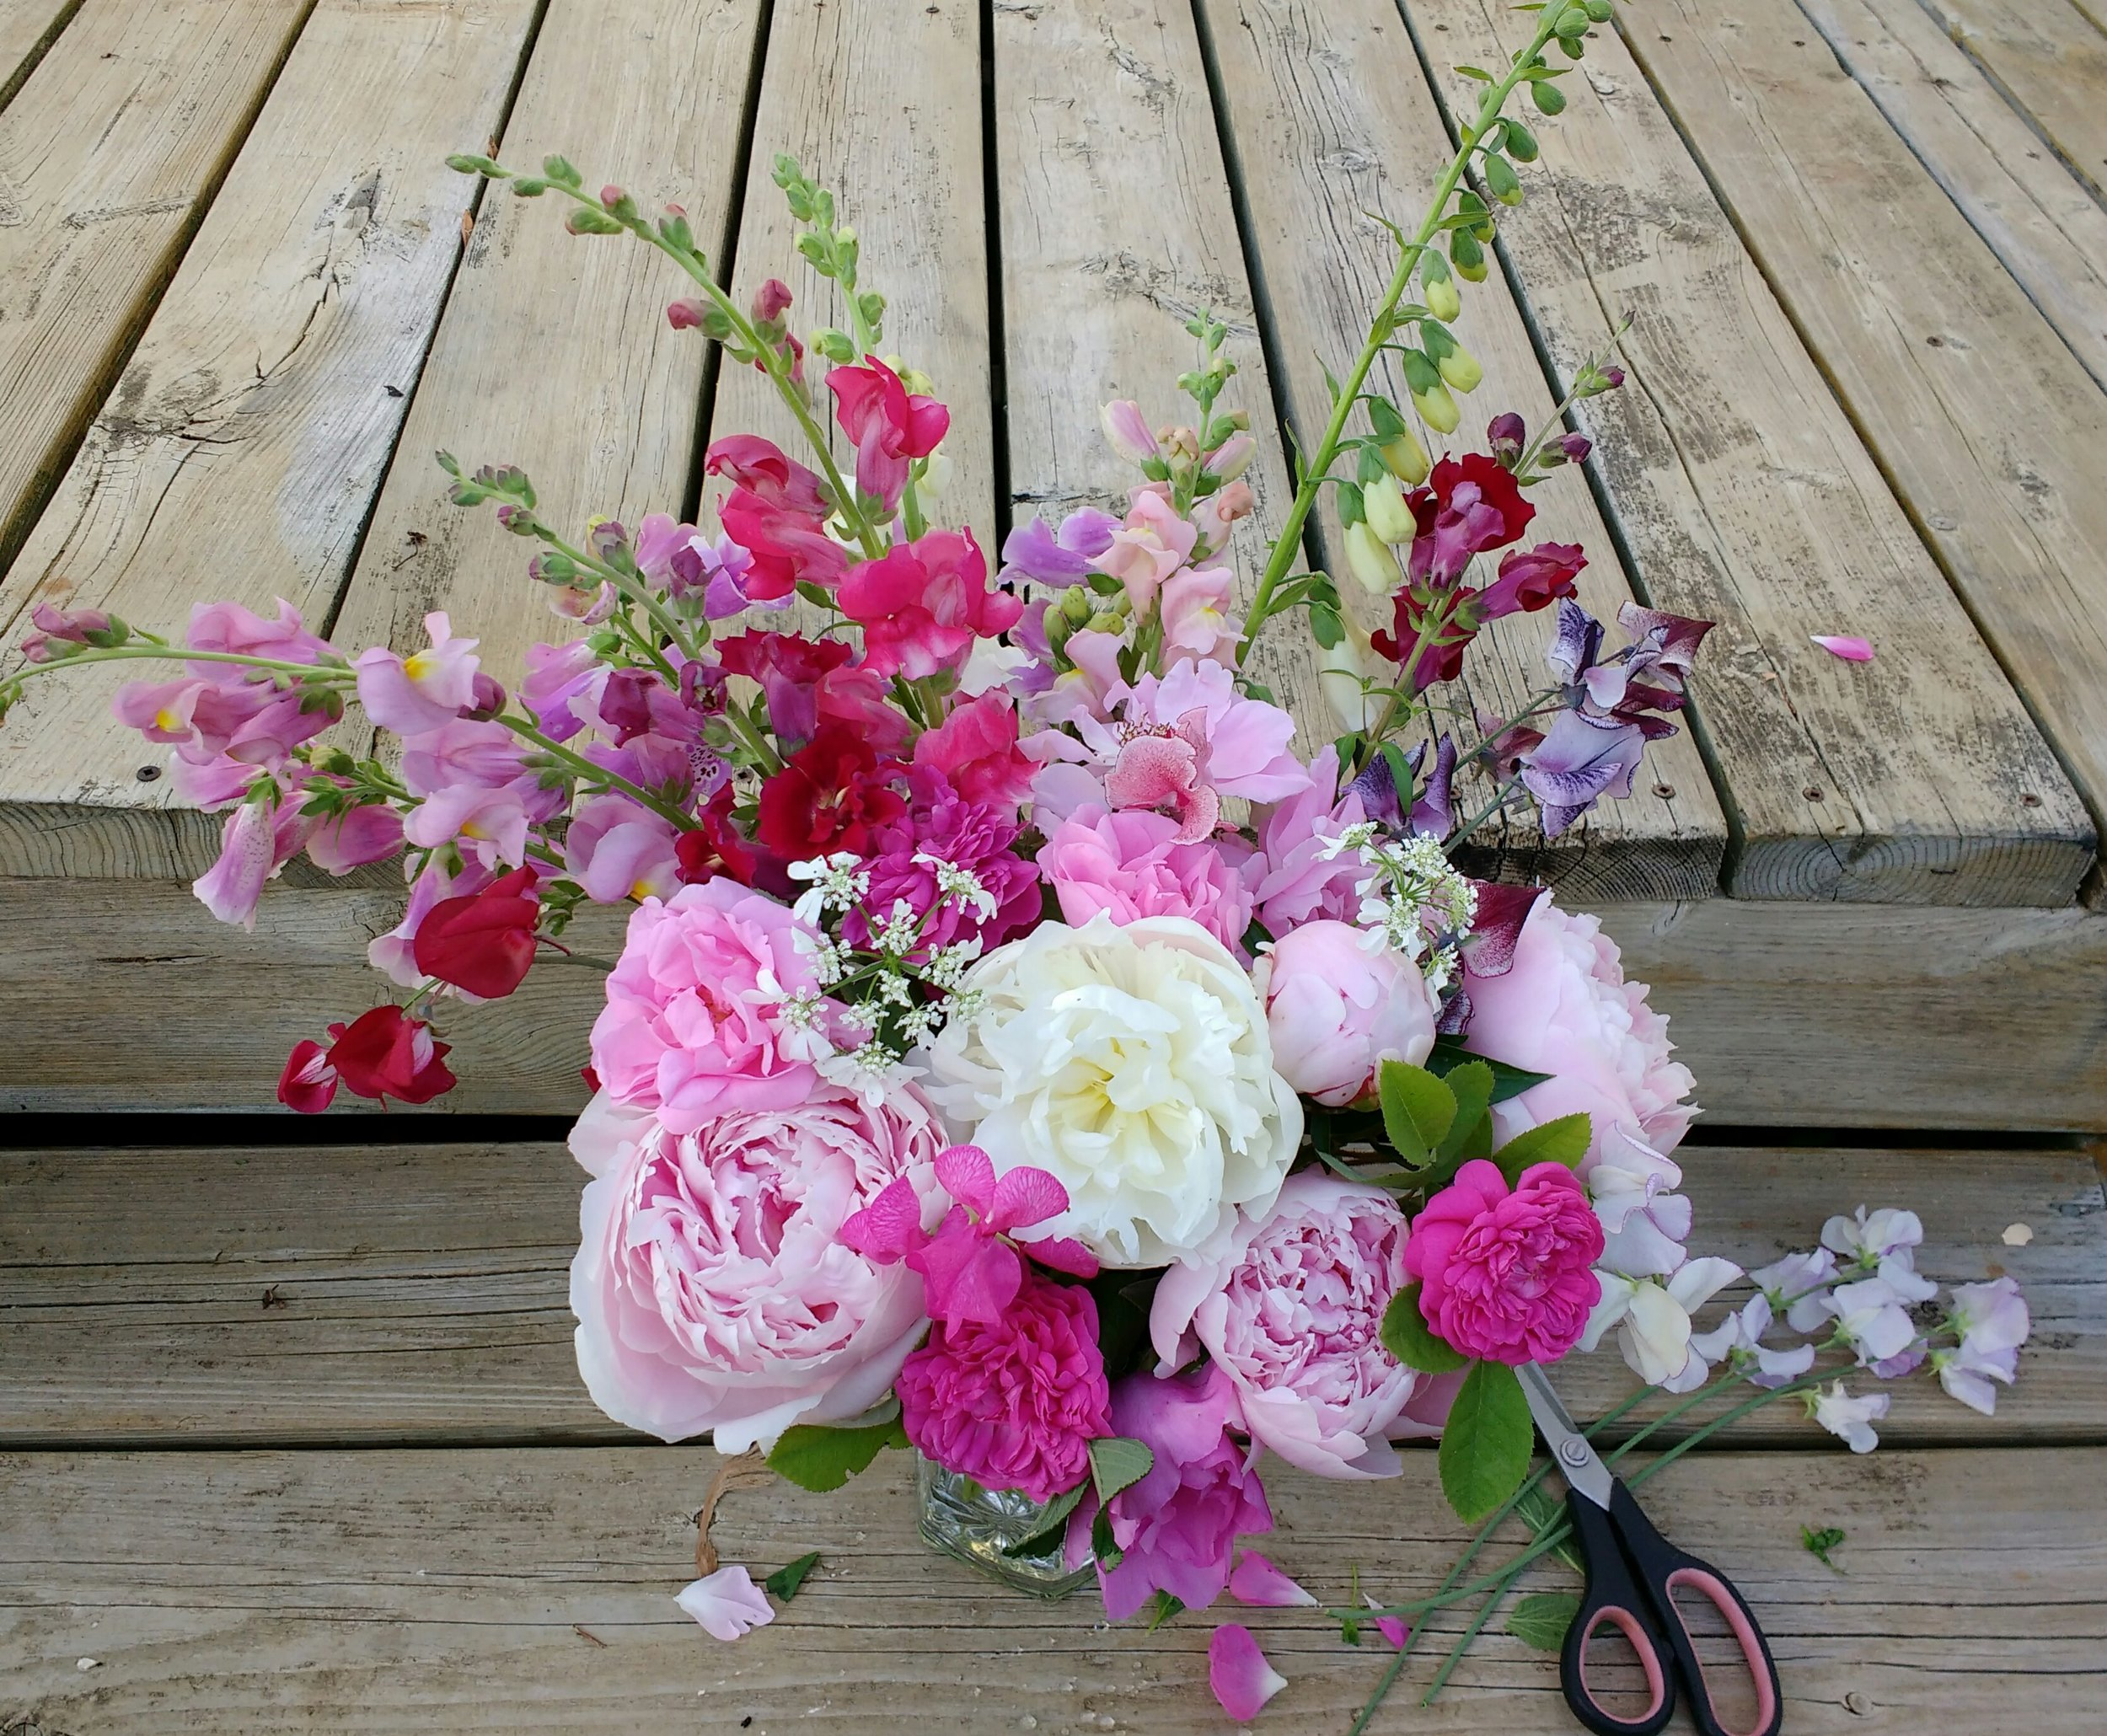 Spring Floral Arrangement - Come work with the best of the spring blooms, learning design techniques and tips for caring for spring cut flowers.We'll provide the flowers and vase for creating your own arrangement – which you will take home with you at the end of the workshop.Date: Saturday, May 11, 2019 (Mother's Day weekend)Time: 1:30pm, for approximately 1- 2 hoursInvestment: $65 per personBring a Friend: $120 for 2 people (must register at the same time, with one registration)